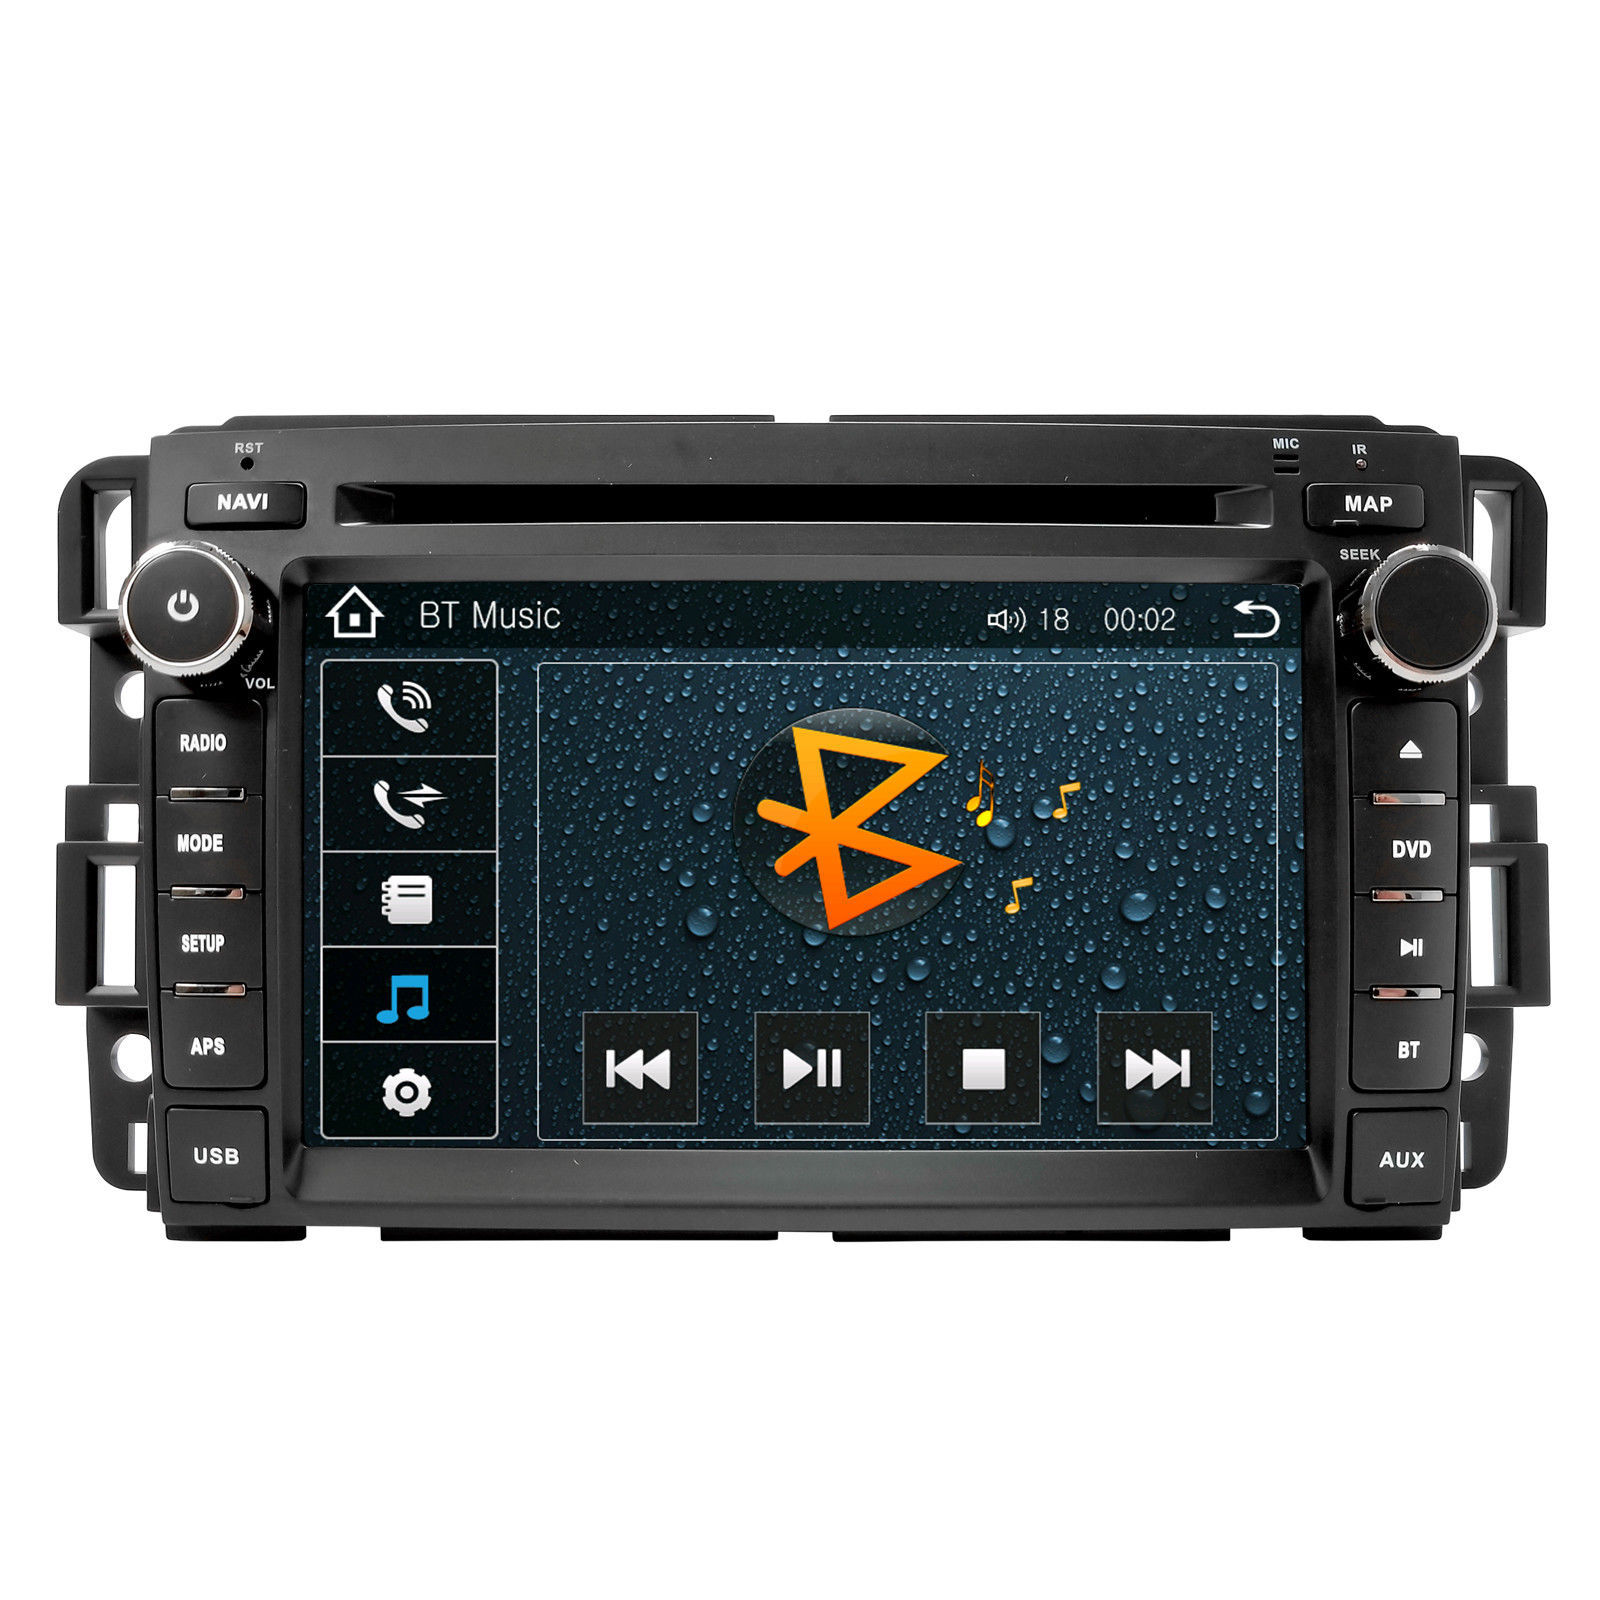 DVD Navigation Touchscreen Multimedia Radio for 2011 GMC Denali image 4